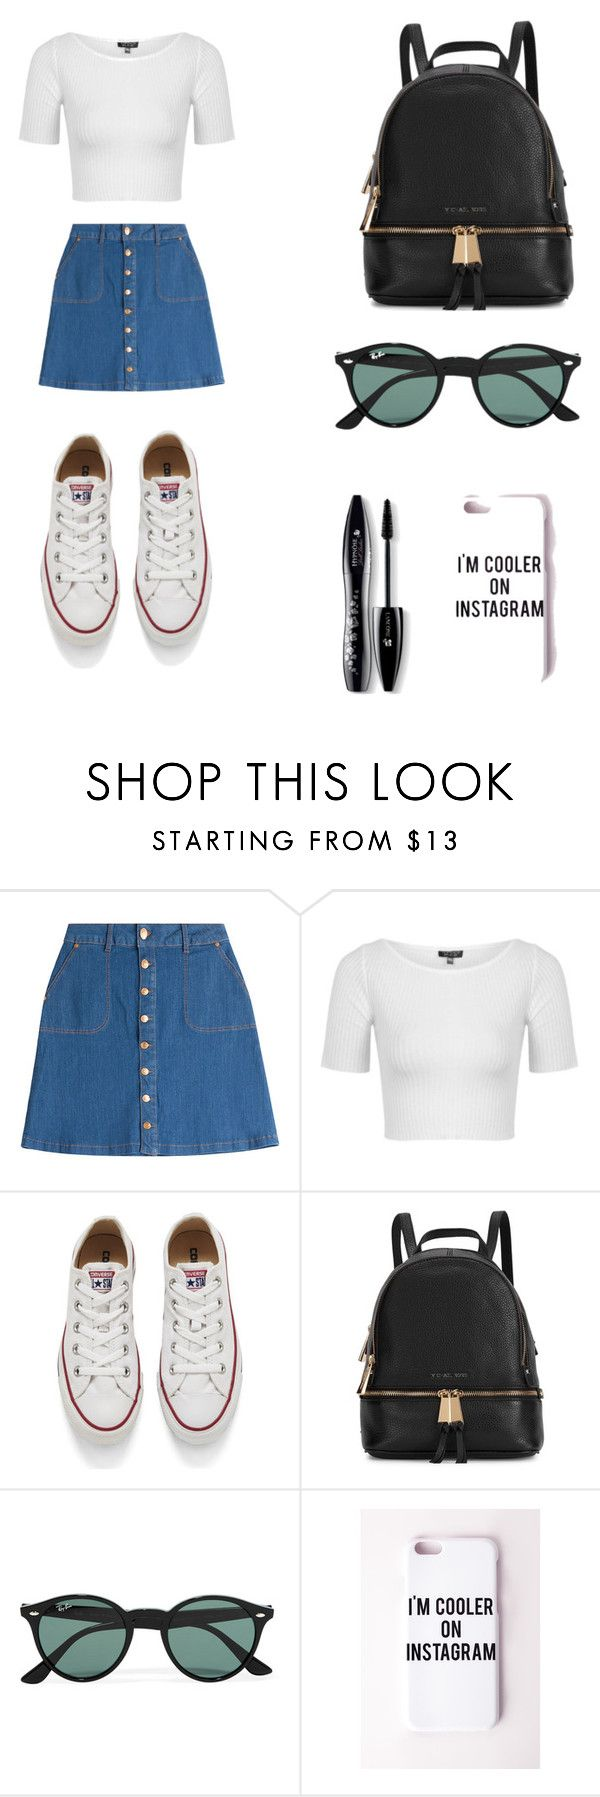 """casual outfit"" by nickplumber ❤ liked on Polyvore featuring HUGO, Topshop, Converse, Michael Kors, Ray-Ban, Missguided, Lancôme, women's clothing, women and female"